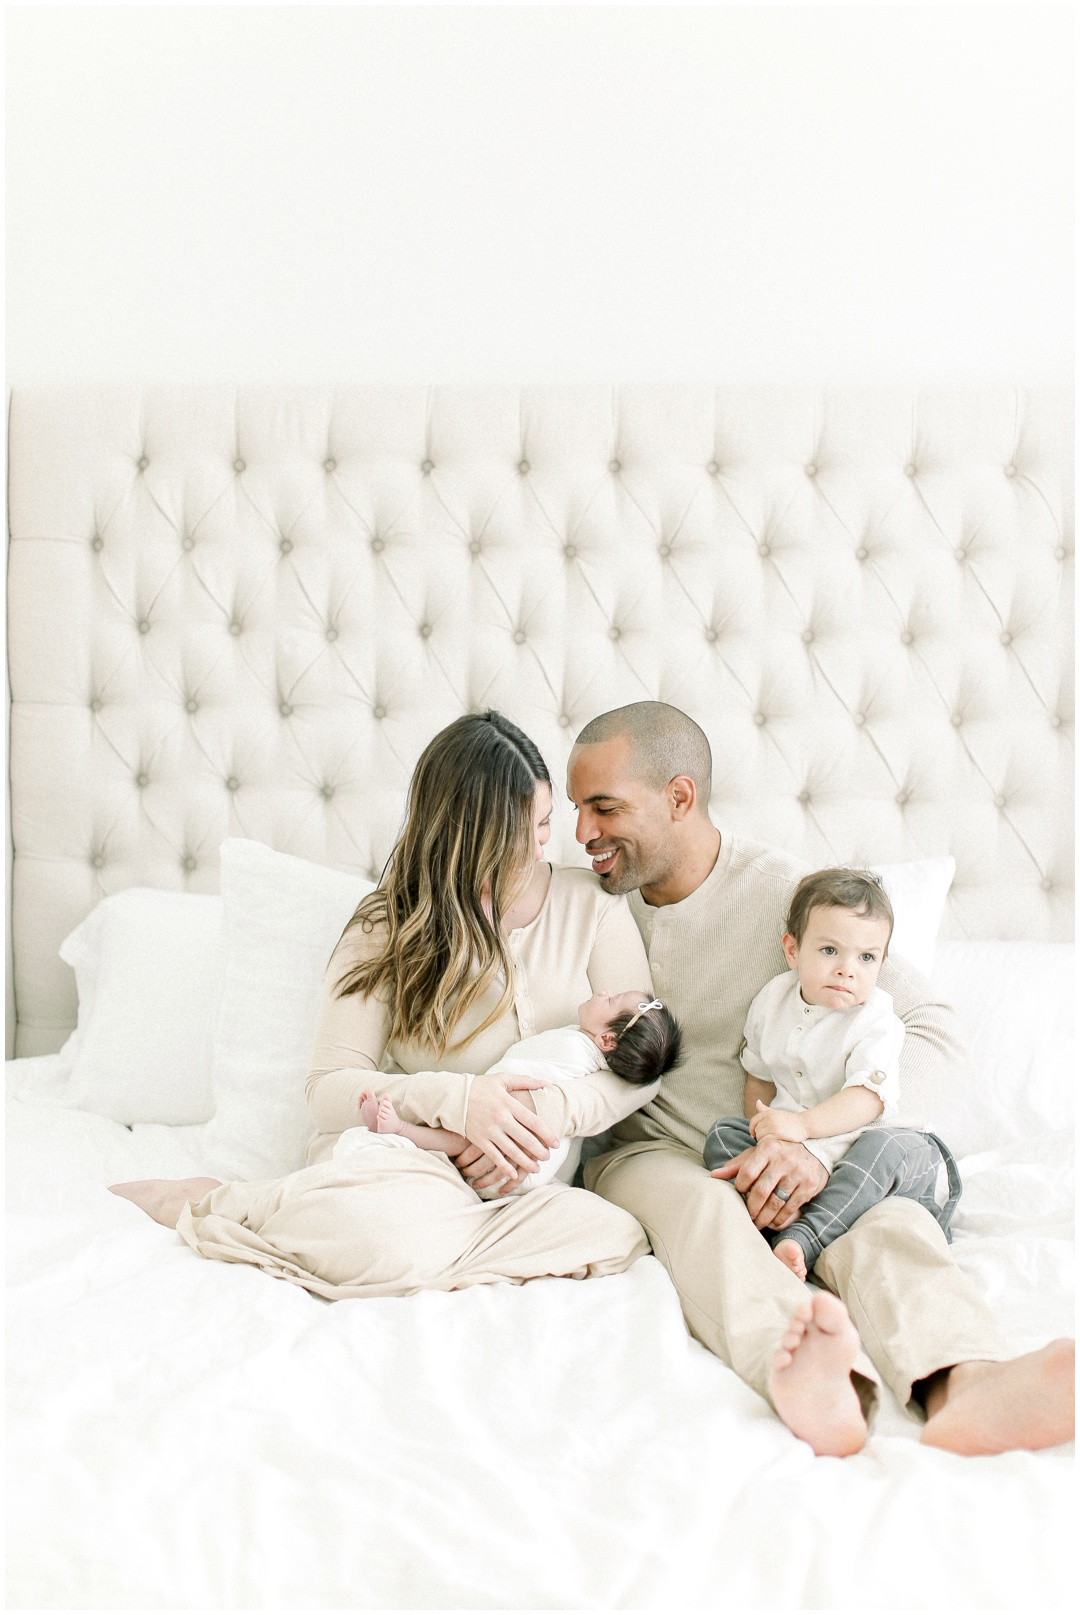 Newport_Beach_Newborn_Light_Airy_Natural_Photographer_Newport_Beach_In-Home_Photographer_Orange_County_Family_Photographer_Cori_Kleckner_Photography_Huntington_Beach_Photographer_Family_OC_Newborn_Blair_Sharpe_Ricky_Sharpe_Newborn_Family__3169.jpg